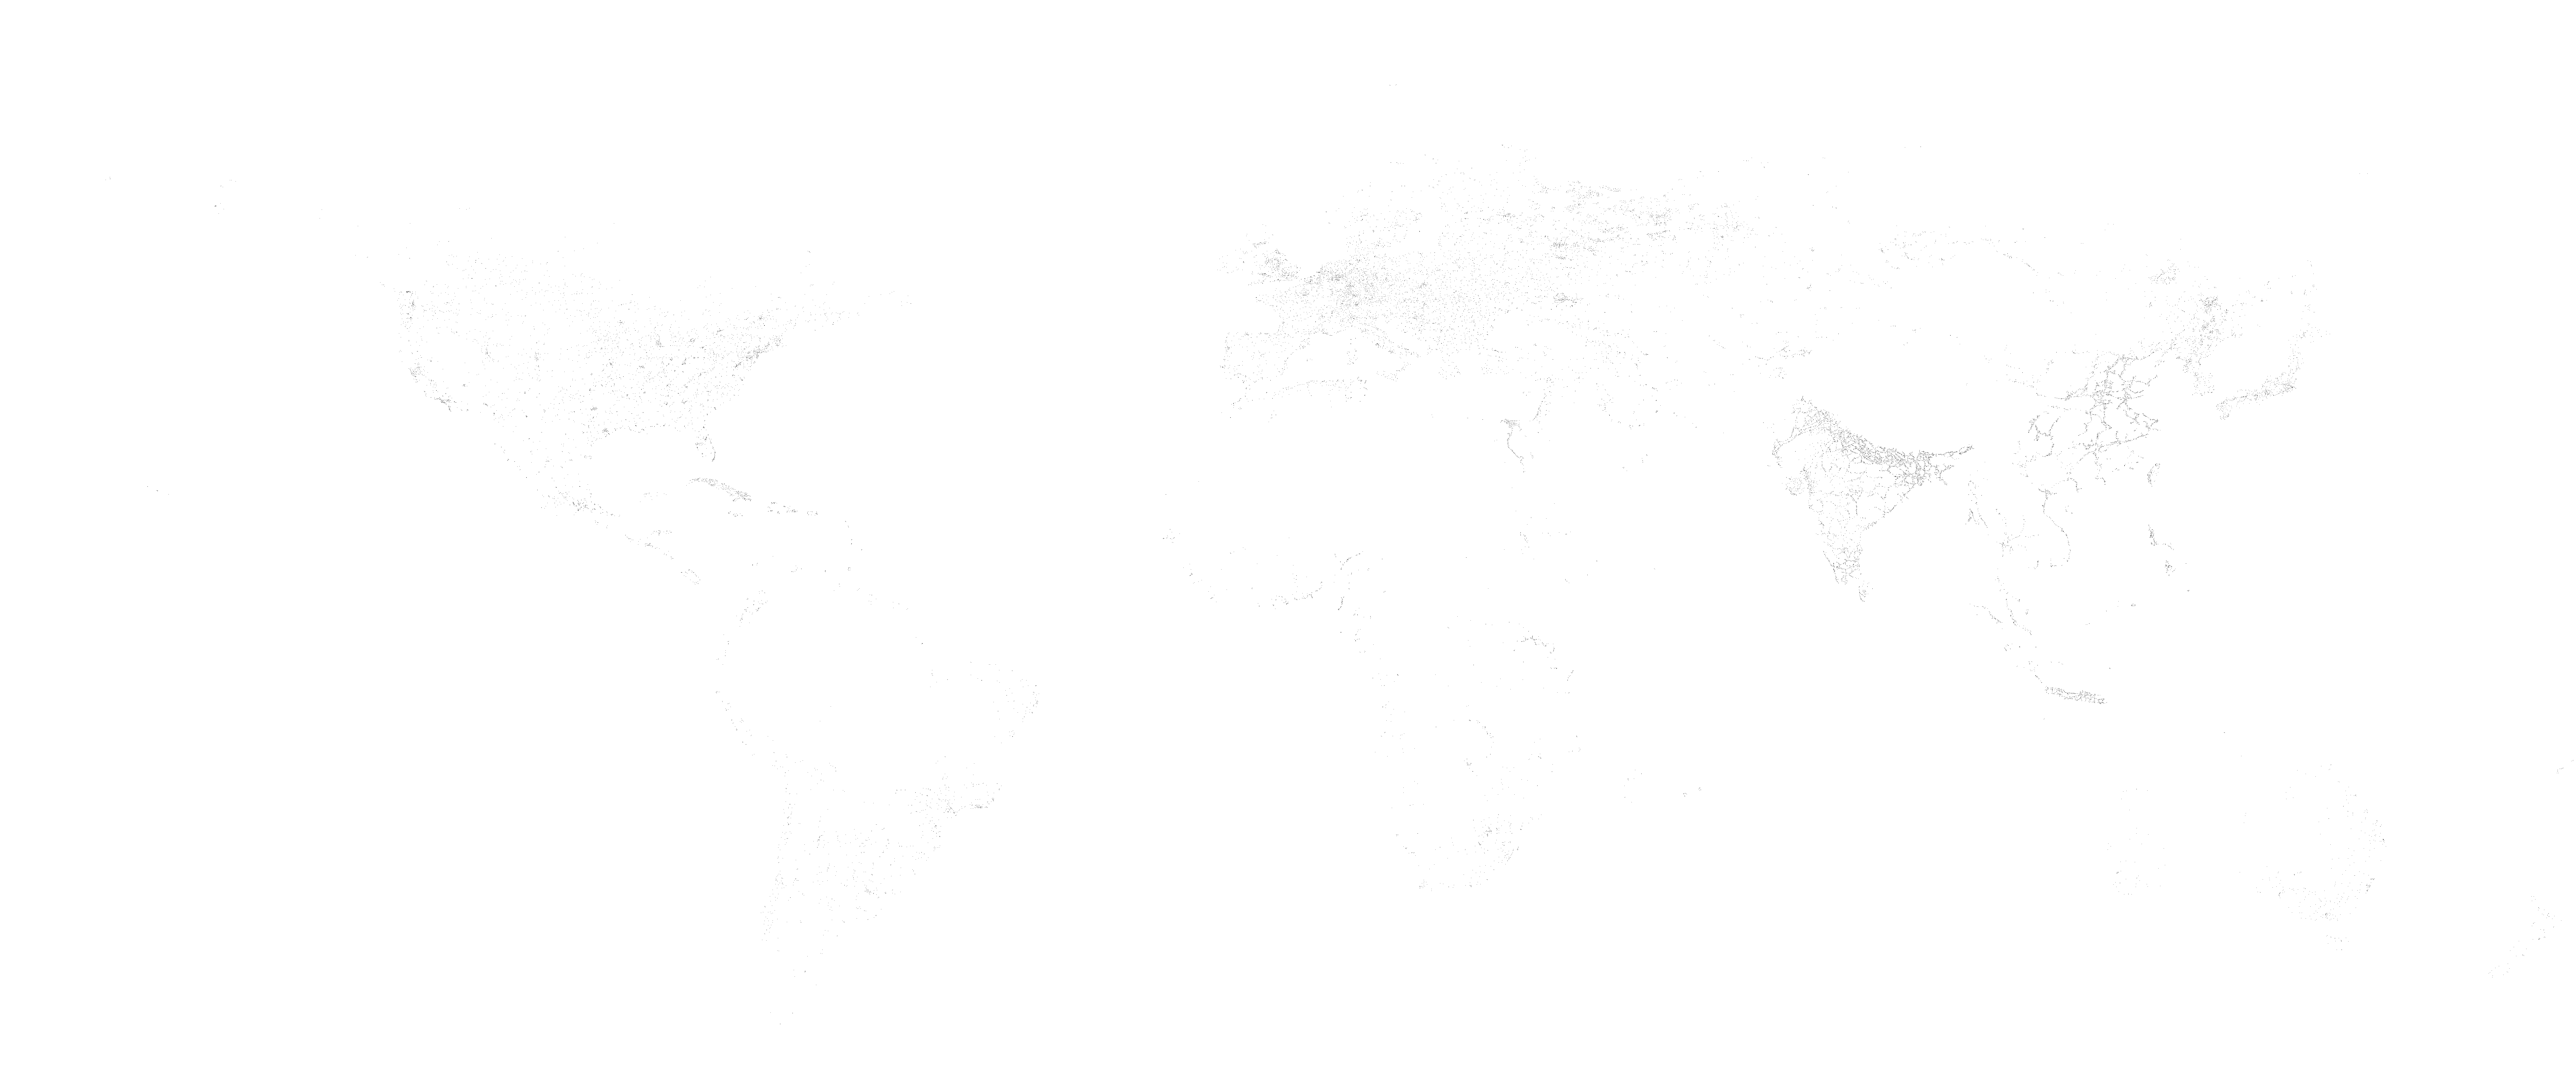 Europe clipart country europe. Map of world high